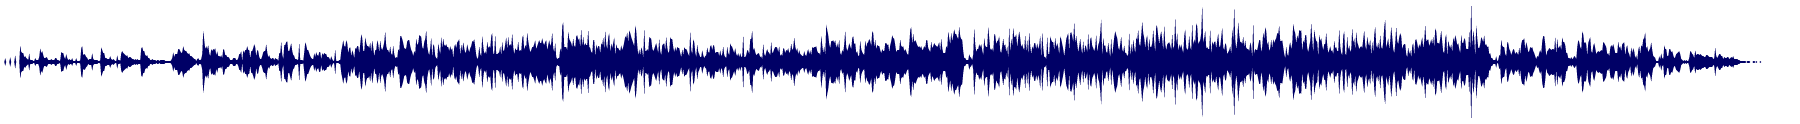 waveform of track #71525